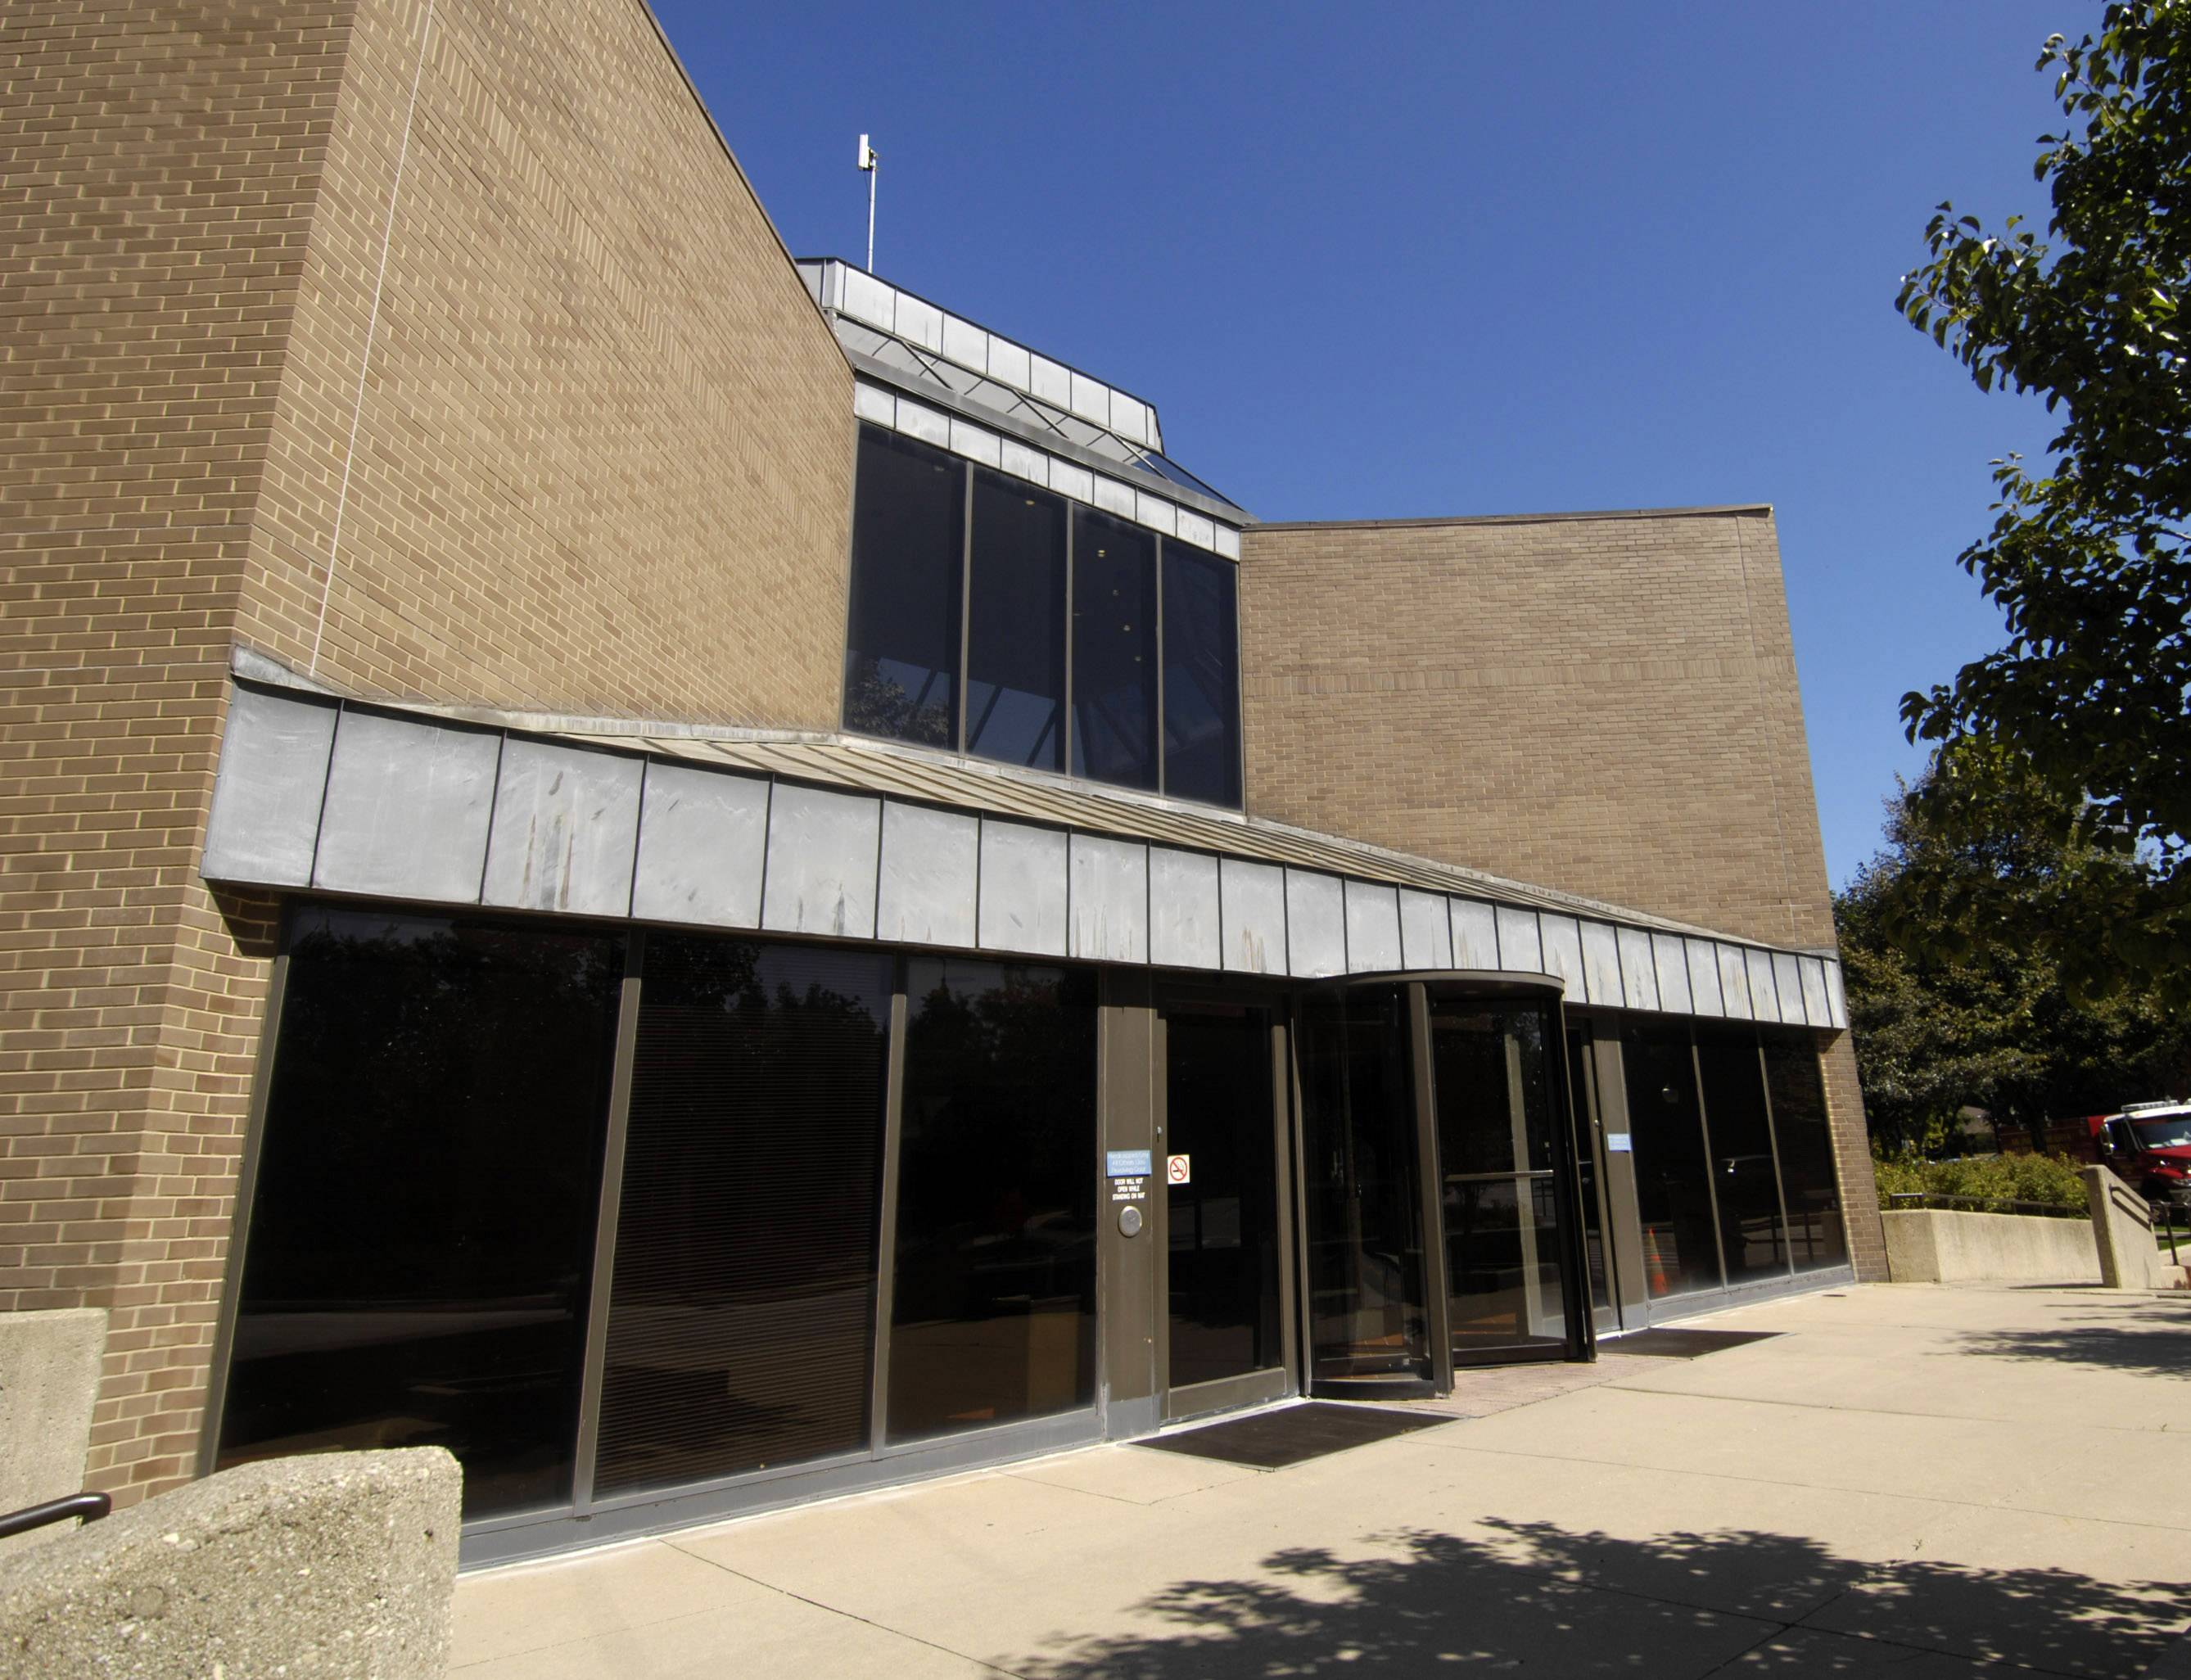 Arlington Hts. to get first look at possible new police station Tuesday